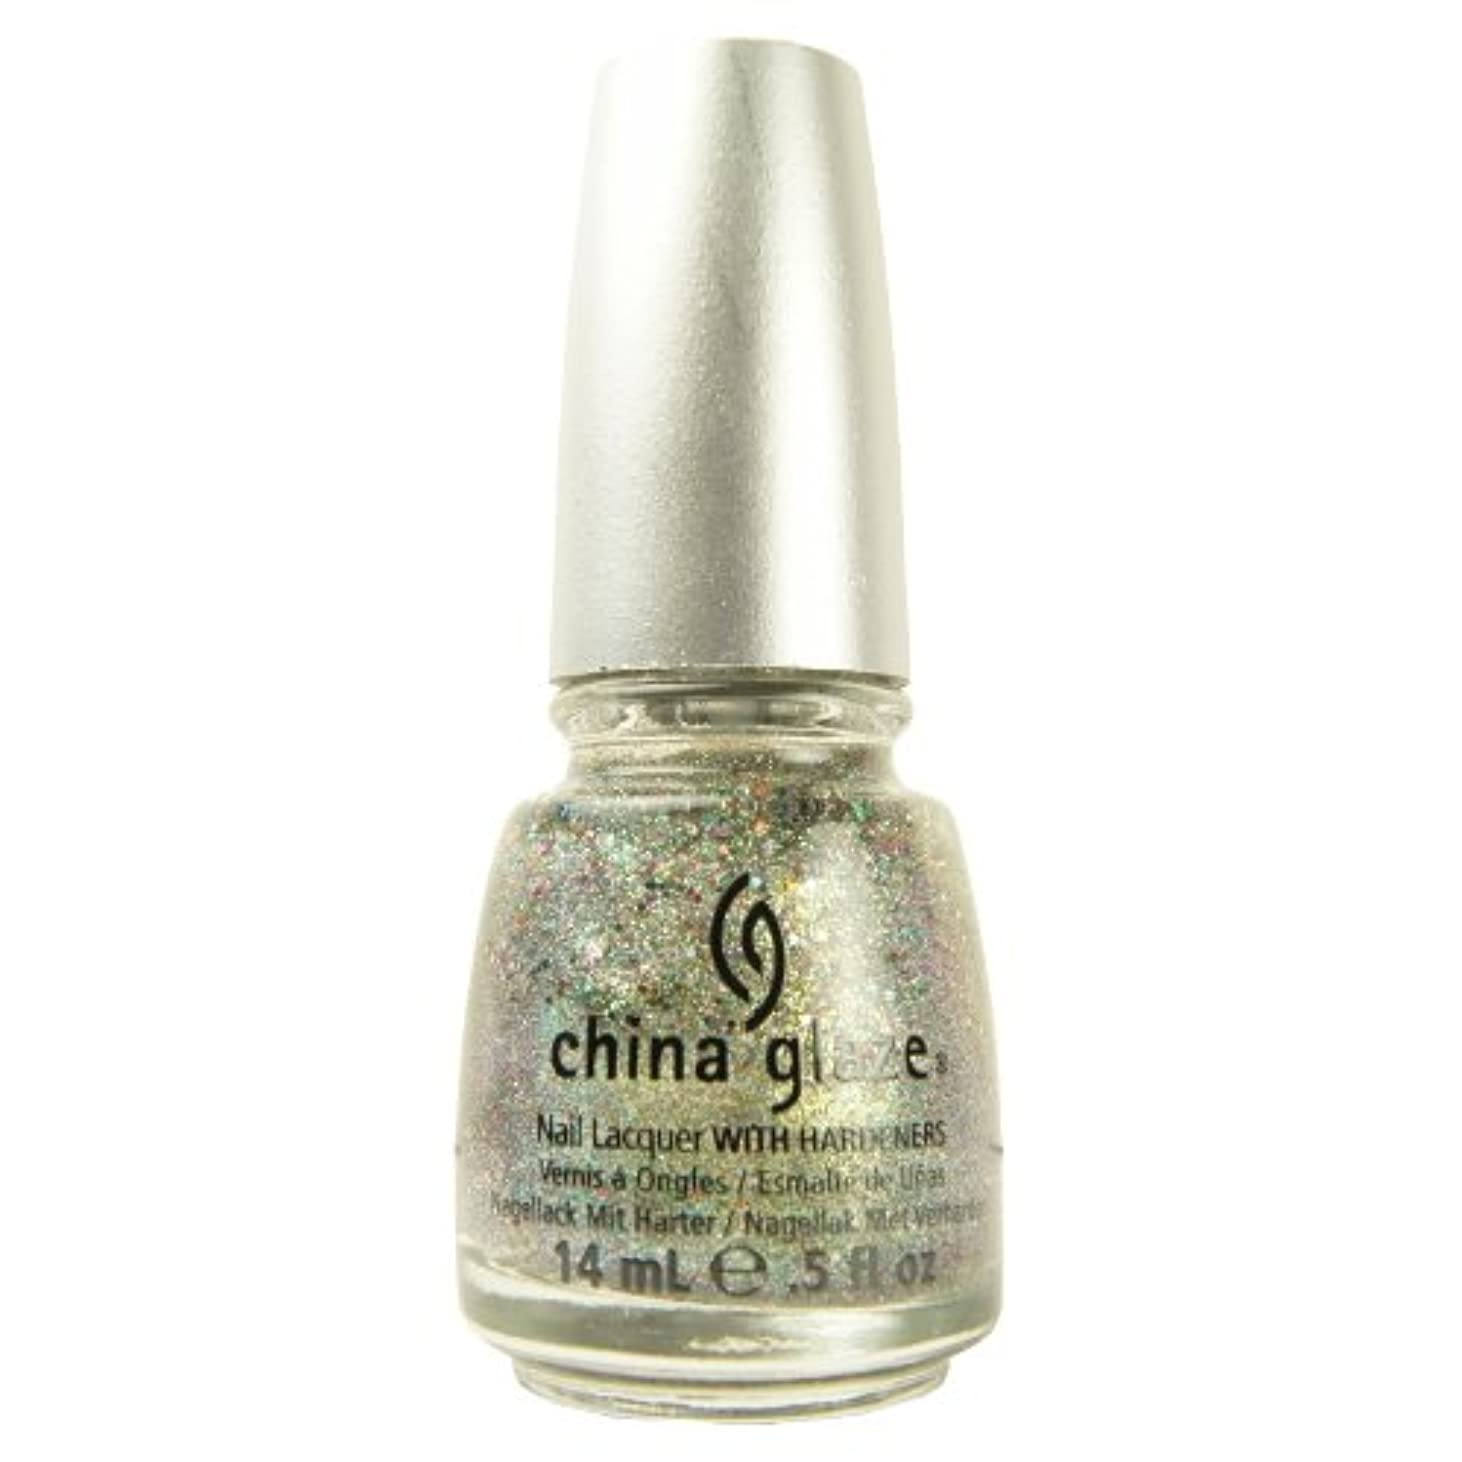 行き当たりばったり津波データ(3 Pack) CHINA GLAZE Glitter Nail Lacquer with Nail Hardner - Ray-Diant (DC) (並行輸入品)